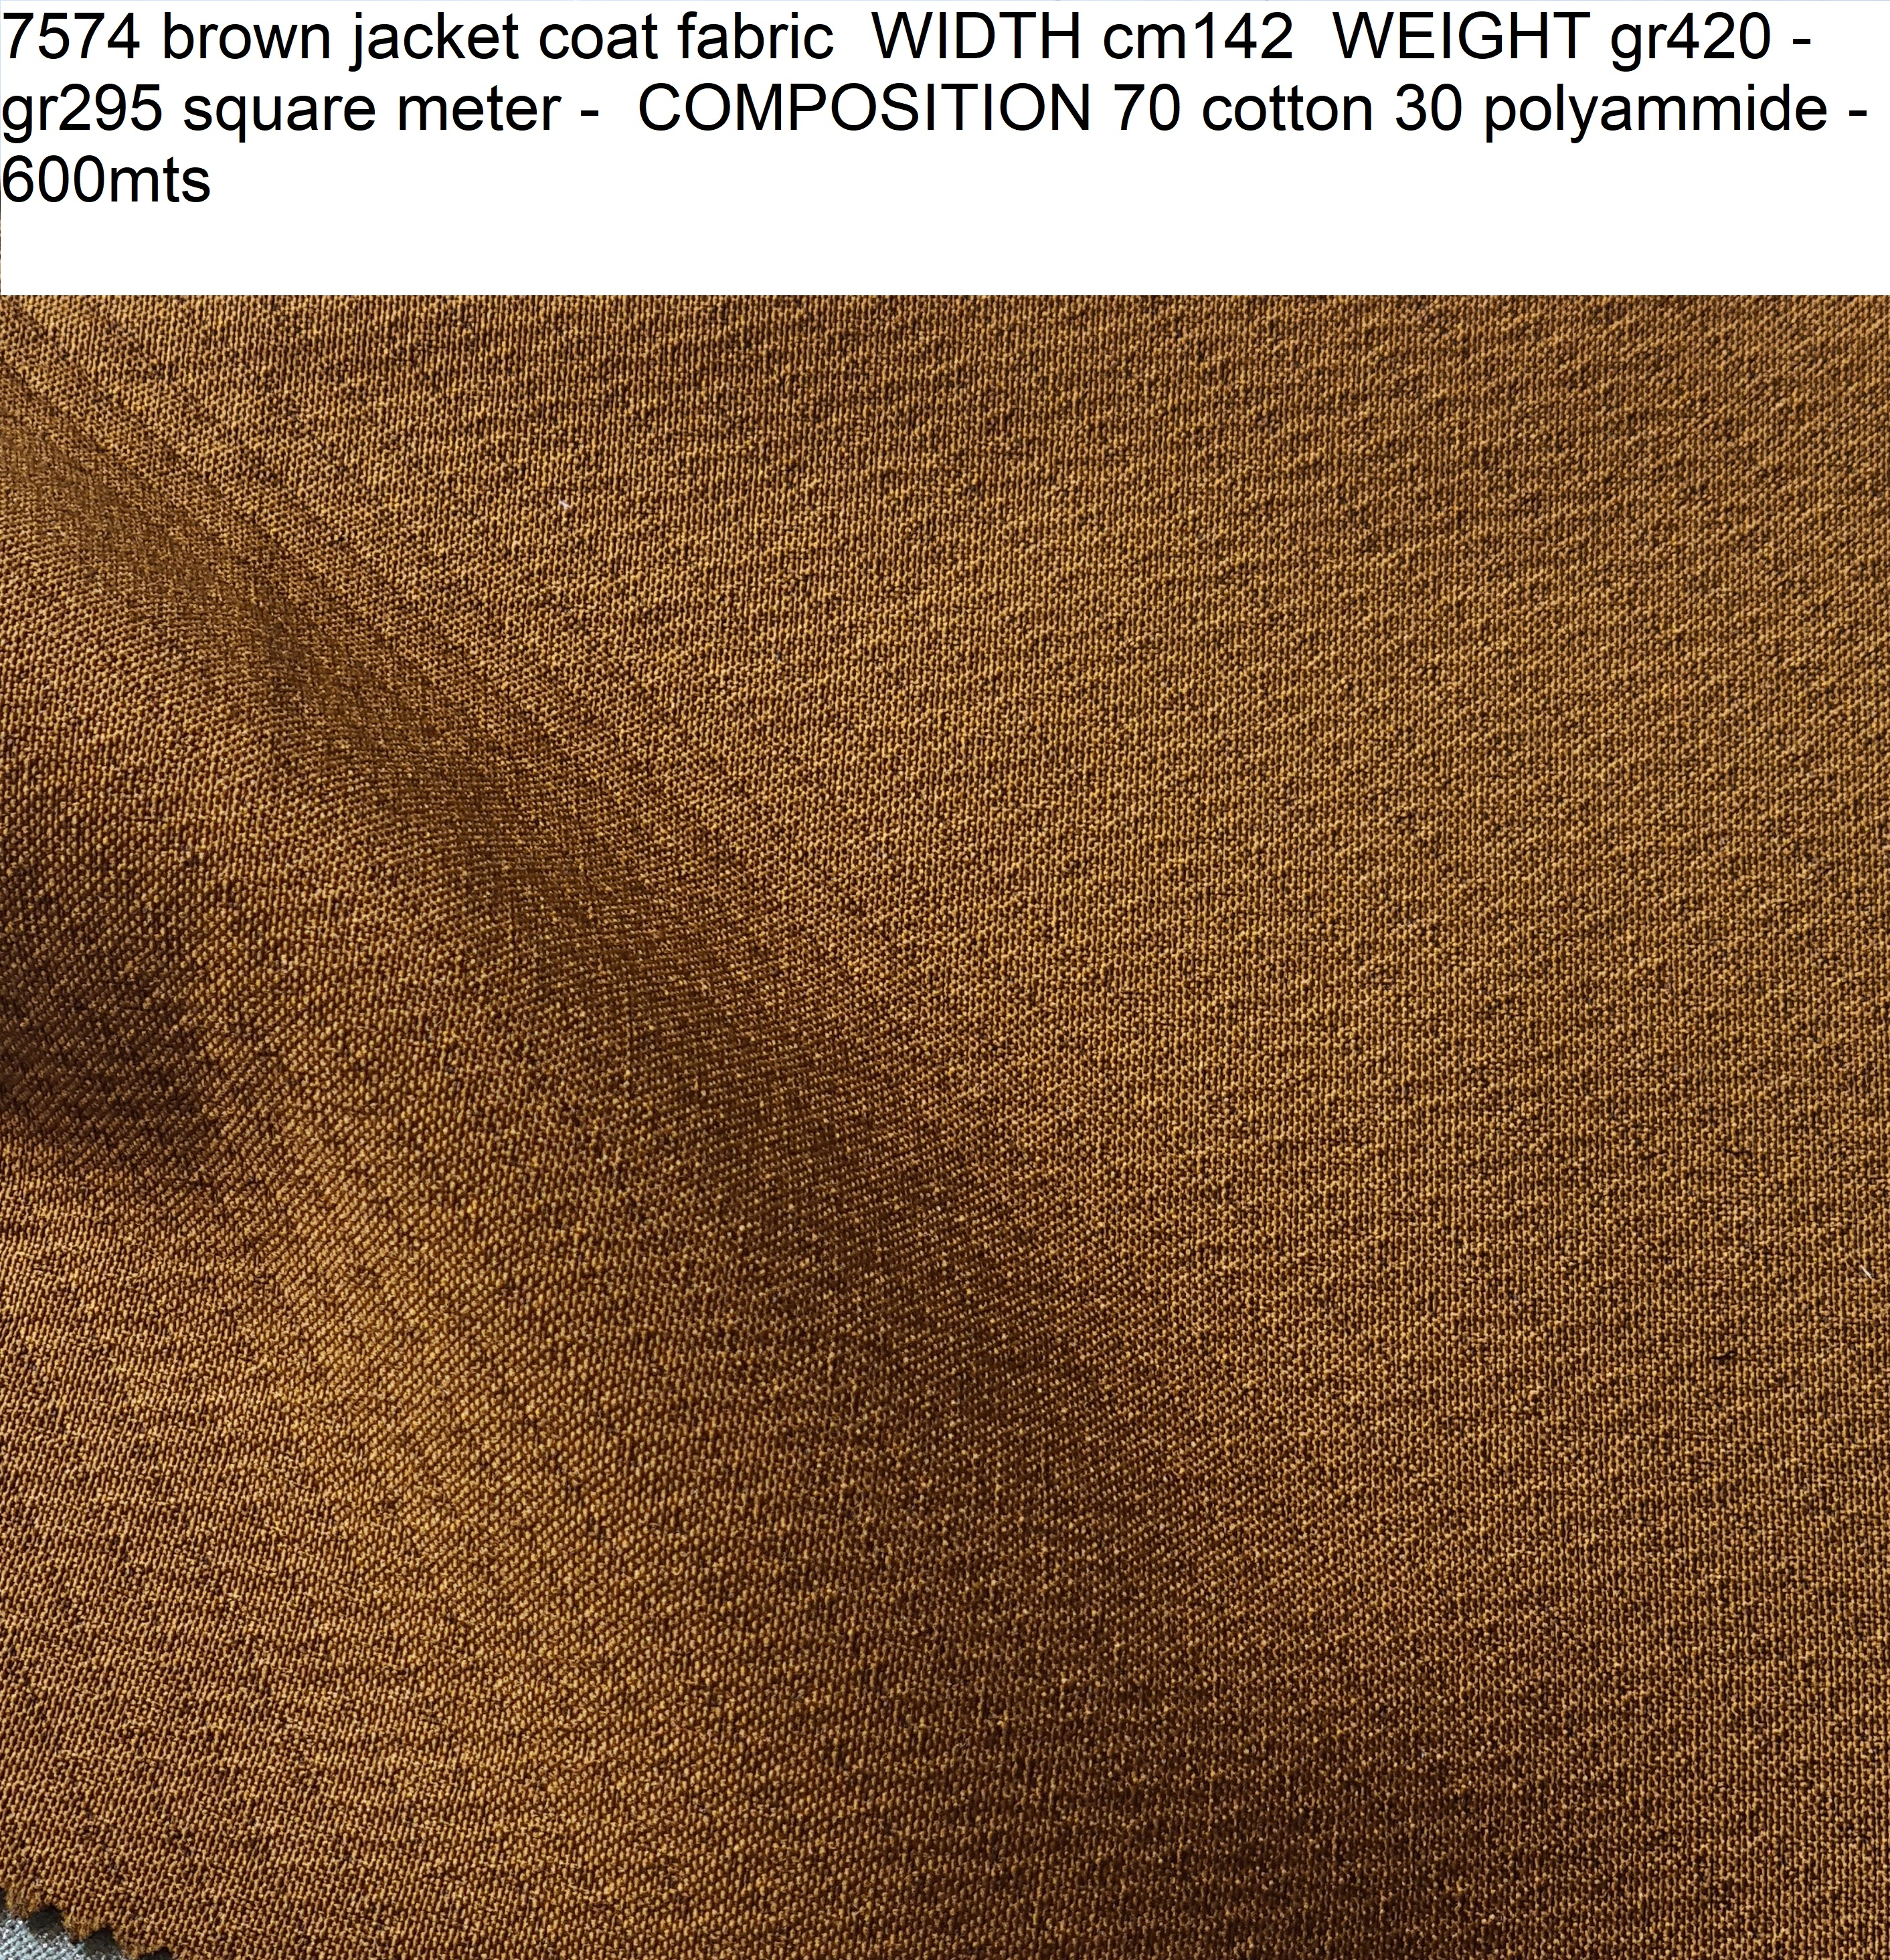 7574 brown jacket coat fabric WIDTH cm142 WEIGHT gr420 - gr295 square meter - COMPOSITION 70 cotton 30 polyammide - 600mts